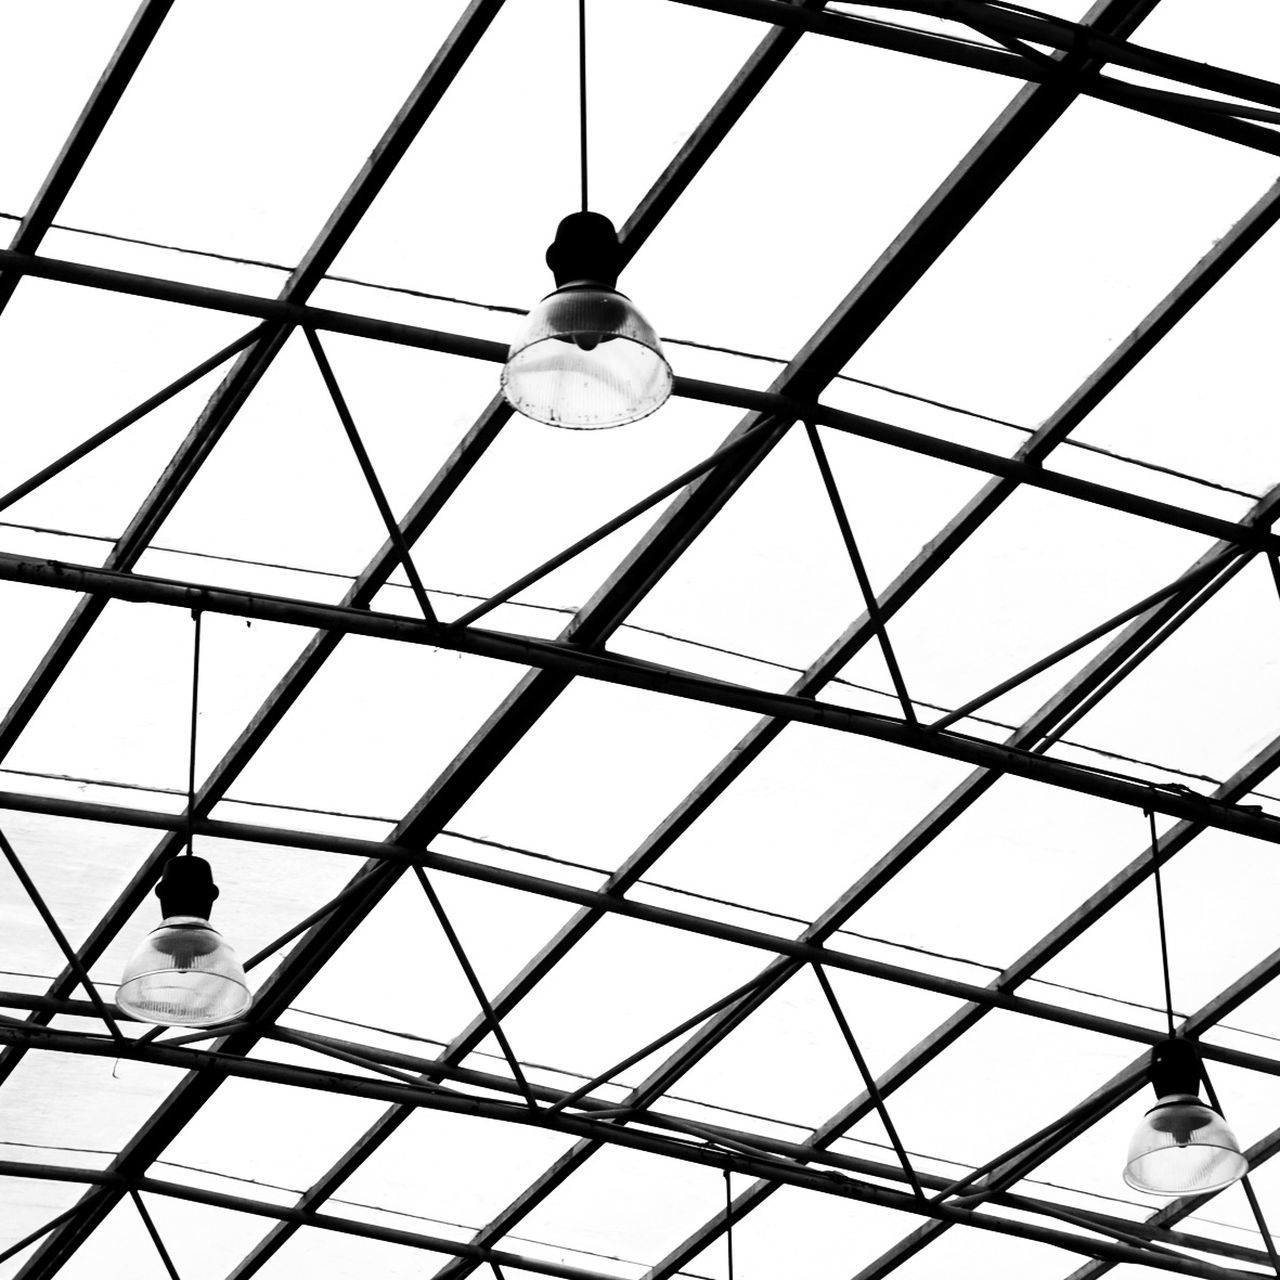 Low Angle View Of Lamps Hanging From Glass Ceiling